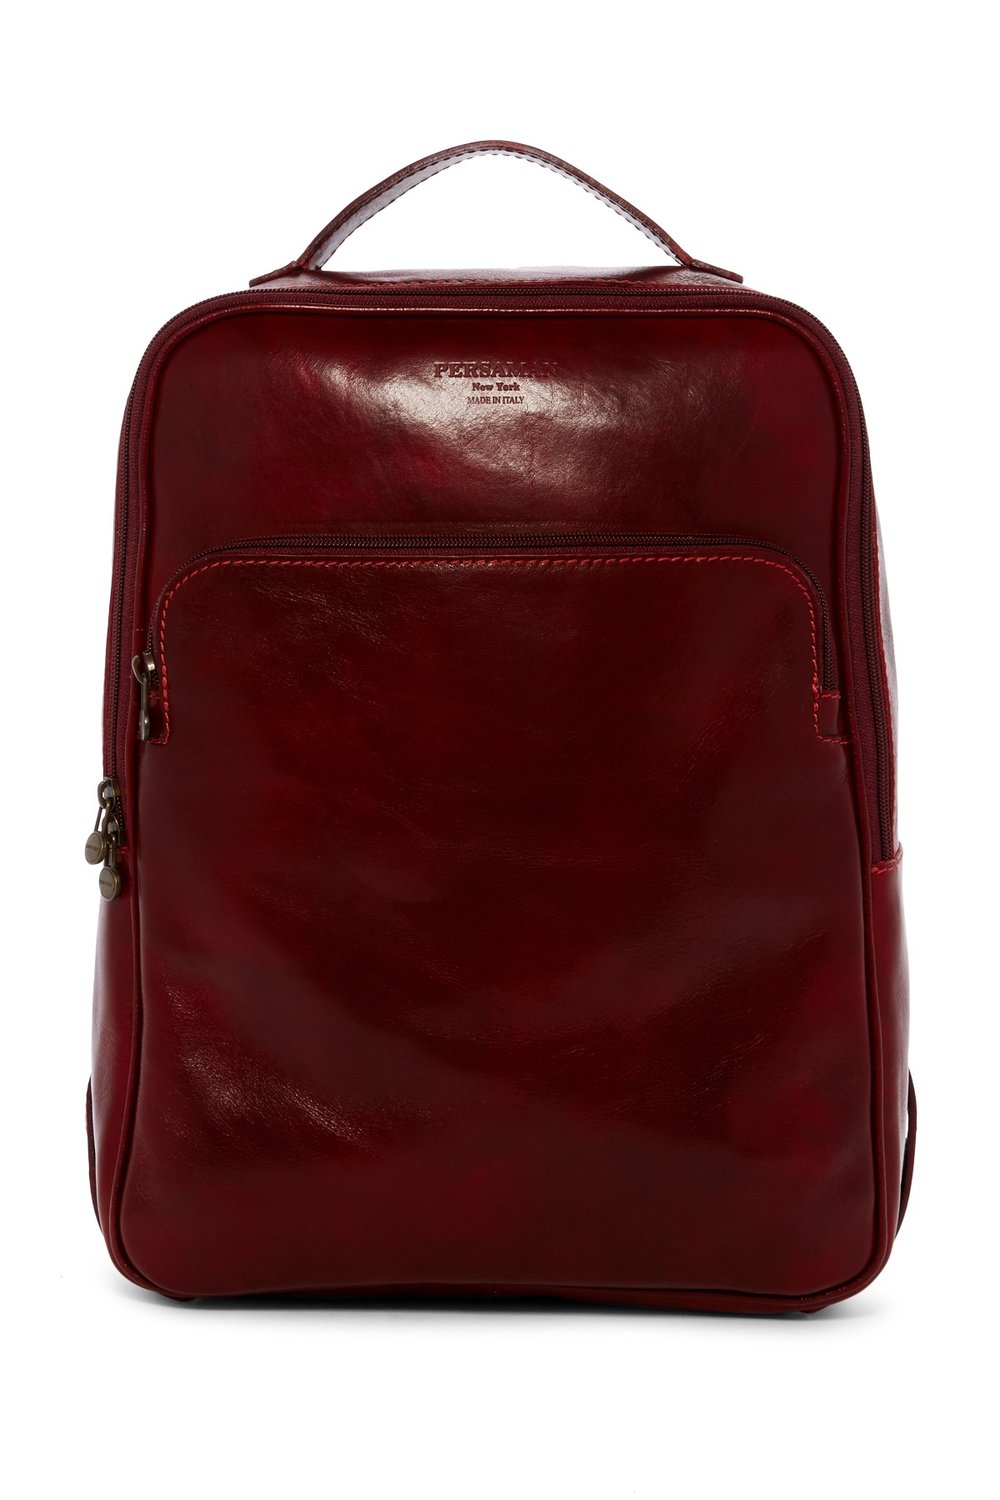 Persaman New York Taylor Italian Leather Backpack. Available in multiple (super rad) colors. Nordstrom Rack. Was: $750. Now: $249.